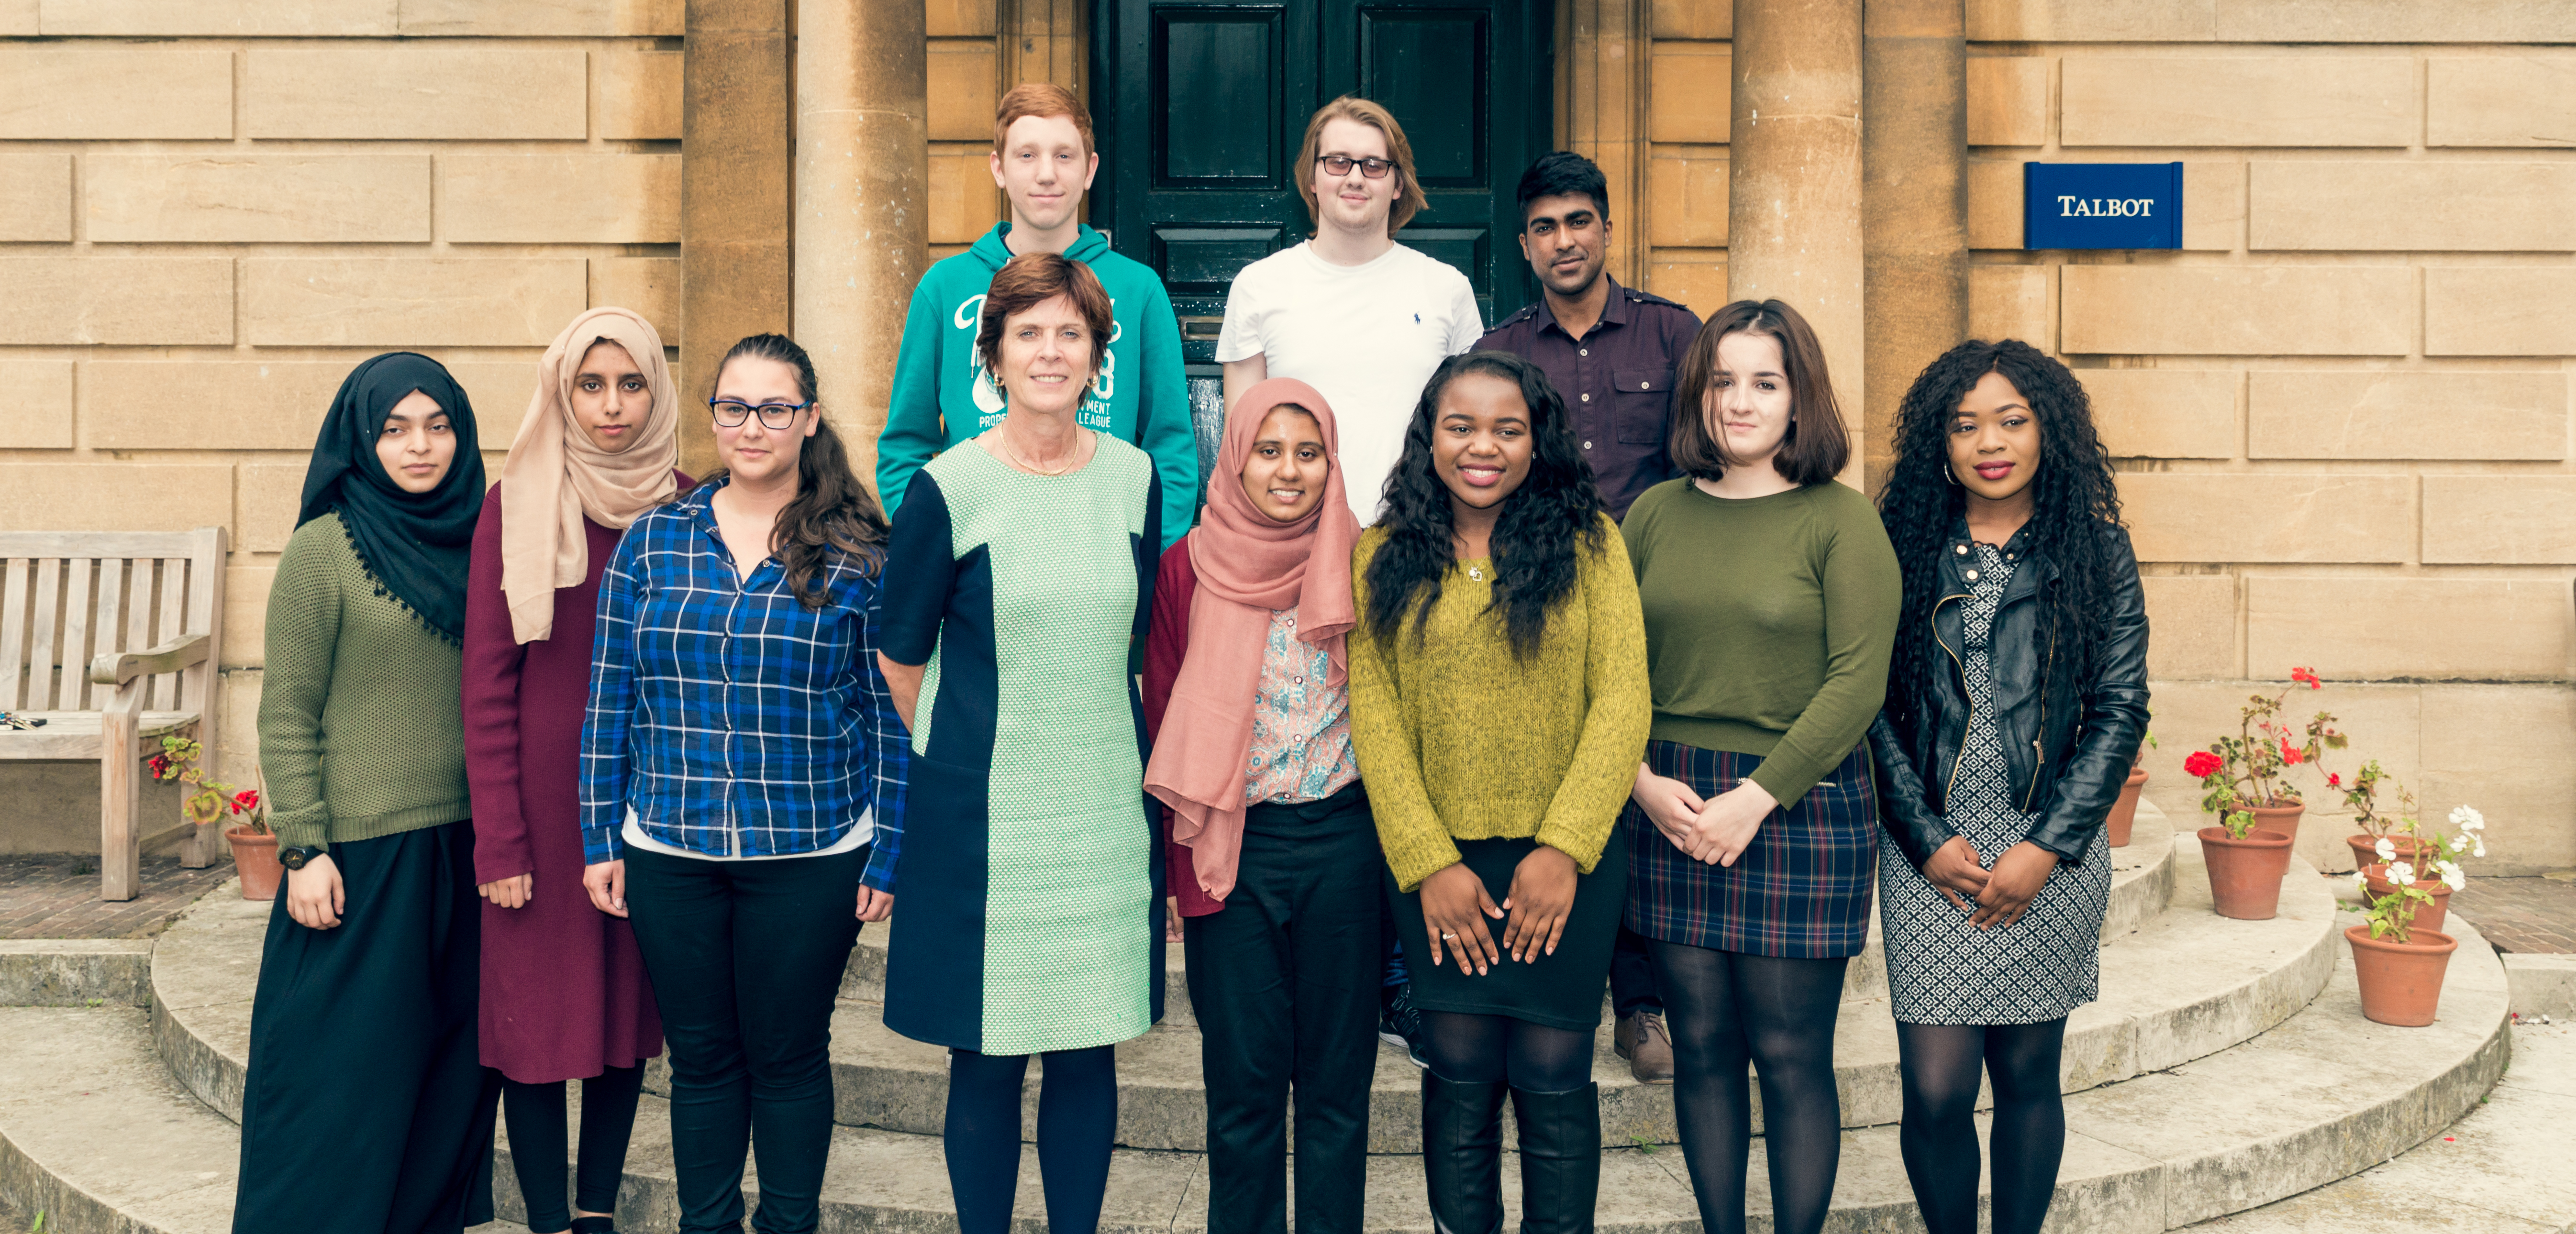 Oxford welcomes new students from across the UK and the world